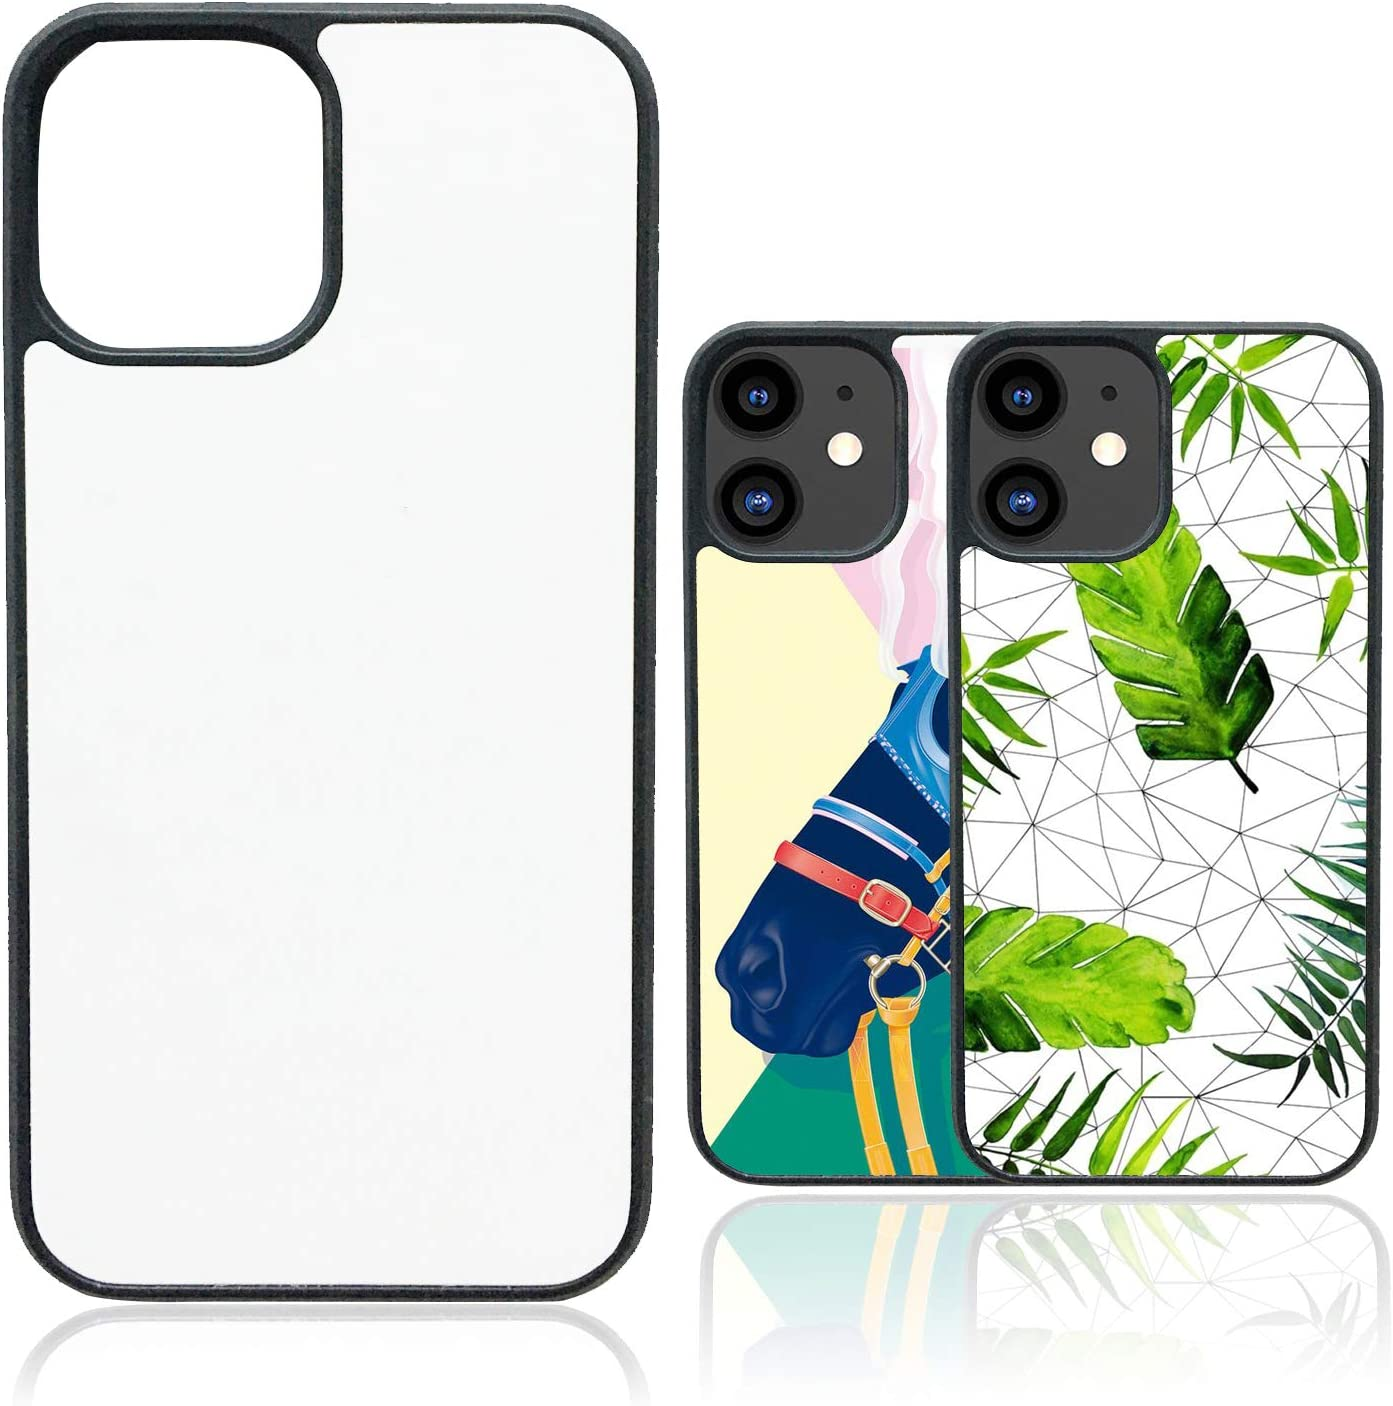 2020 6.1-Inch Blank Printable Phone Case for DIY Customize Heat Press Soft Rubber Protective Slim Case JUSTRY 10PCS Sublimation Blanks Phone Case Covers Compatible with Apple iPhone 12//12 Pro